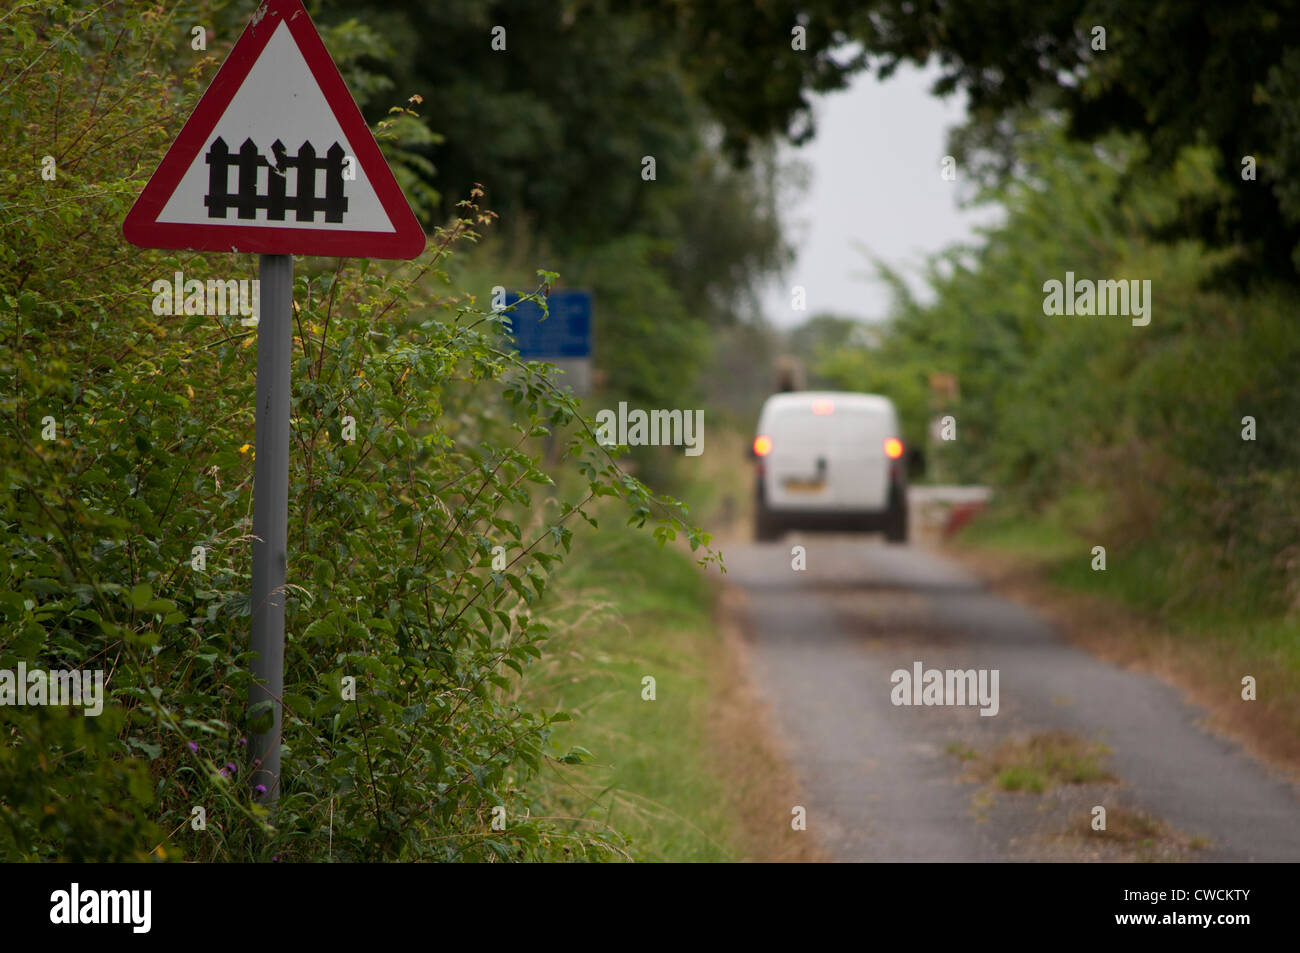 unmanned level crossing sign on country lane Stock Photo